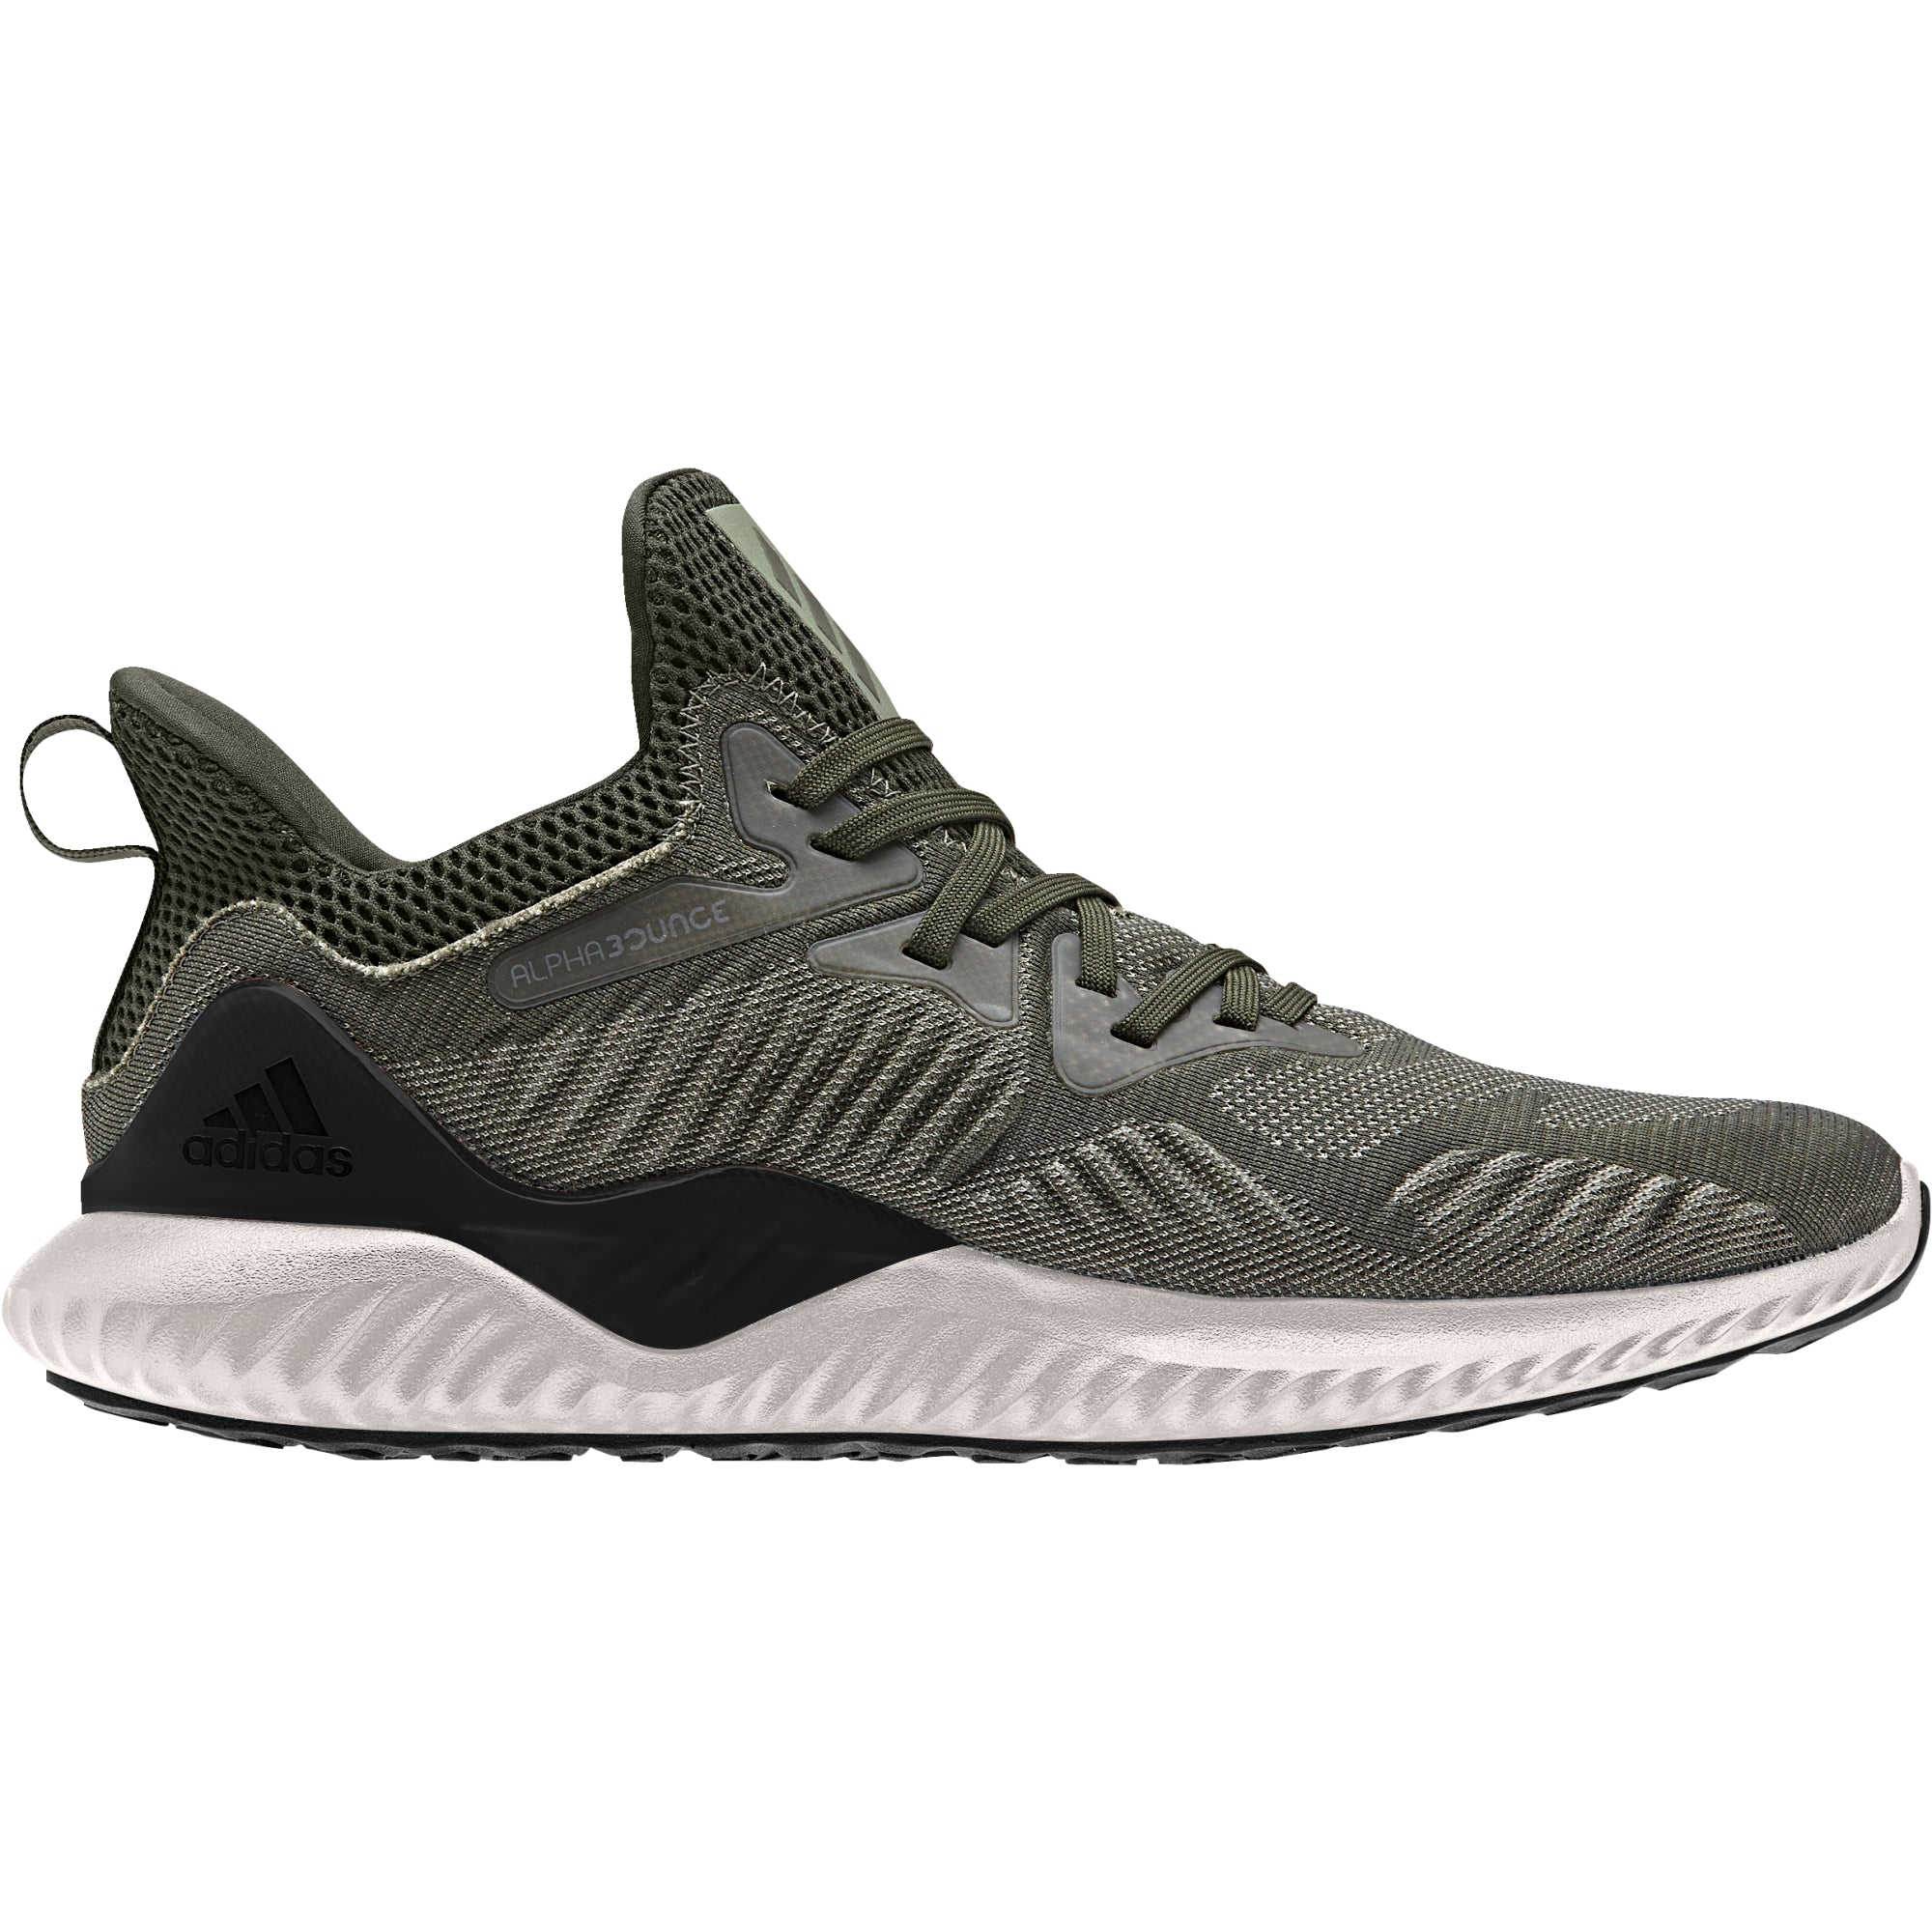 0db7a20102082 Buy adidas Men Alphabounce Beyond Running Shoes